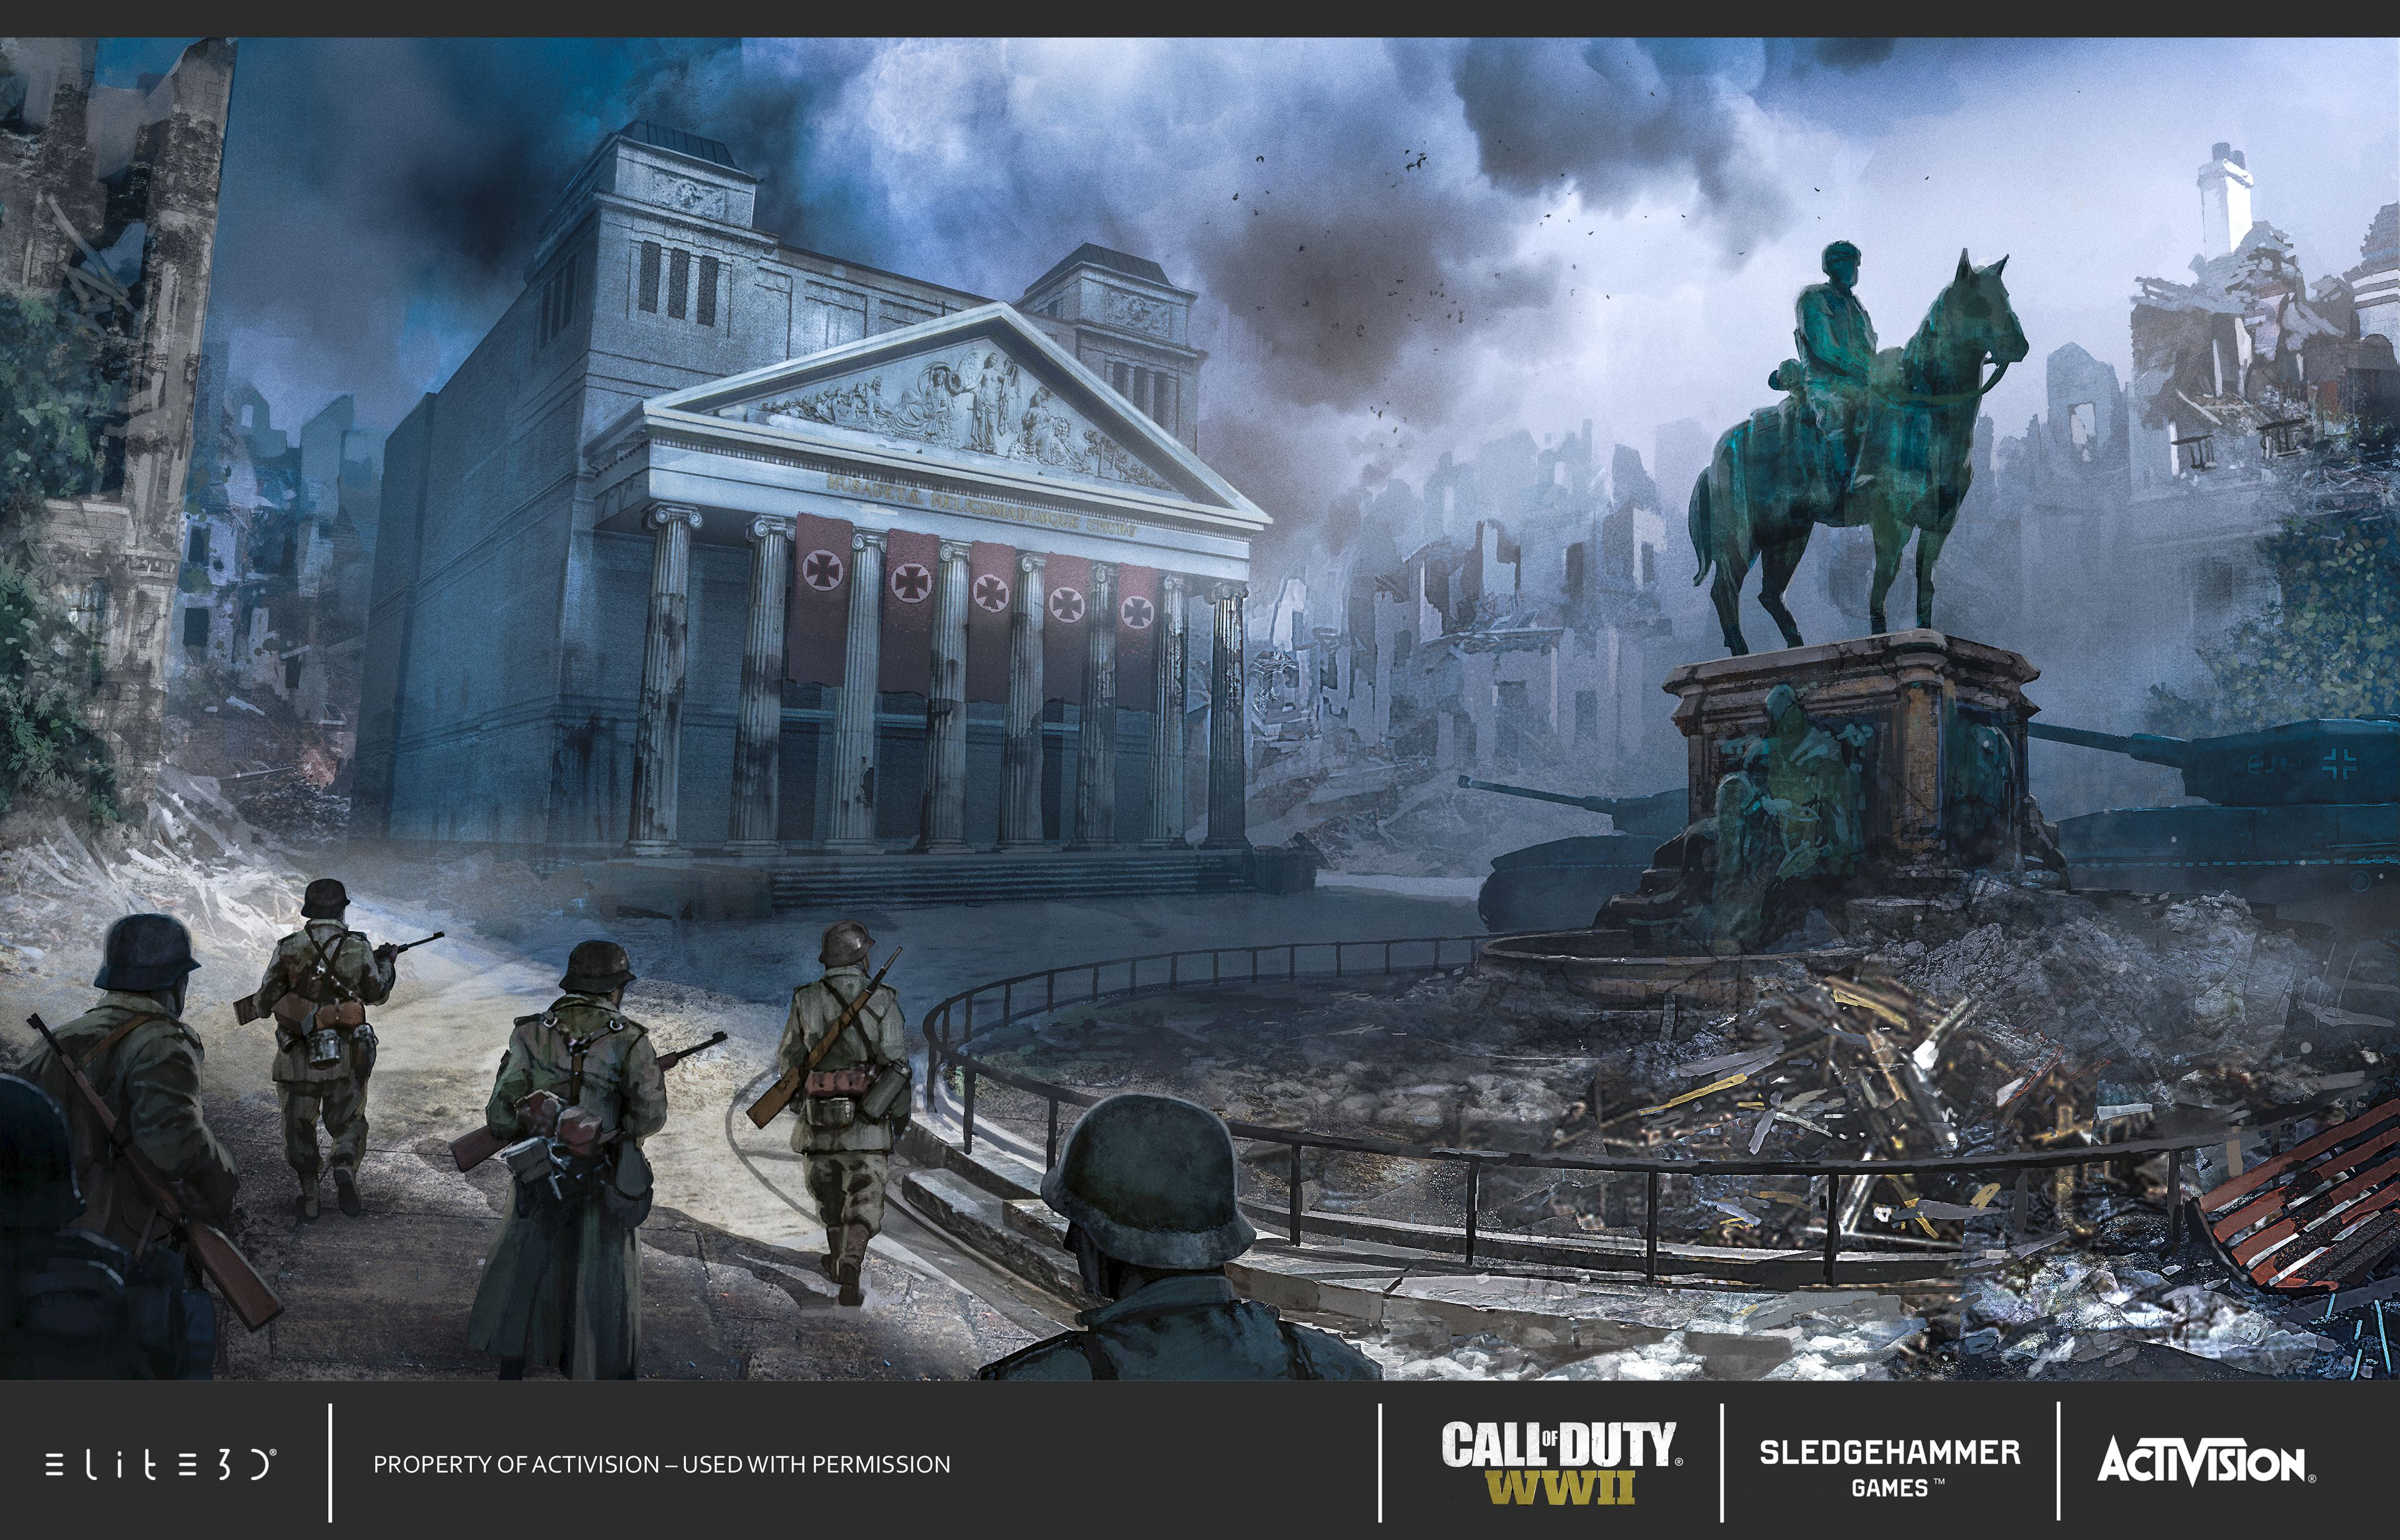 Call Of Duty: WWII Concept Art & Calling Cards | elite3d